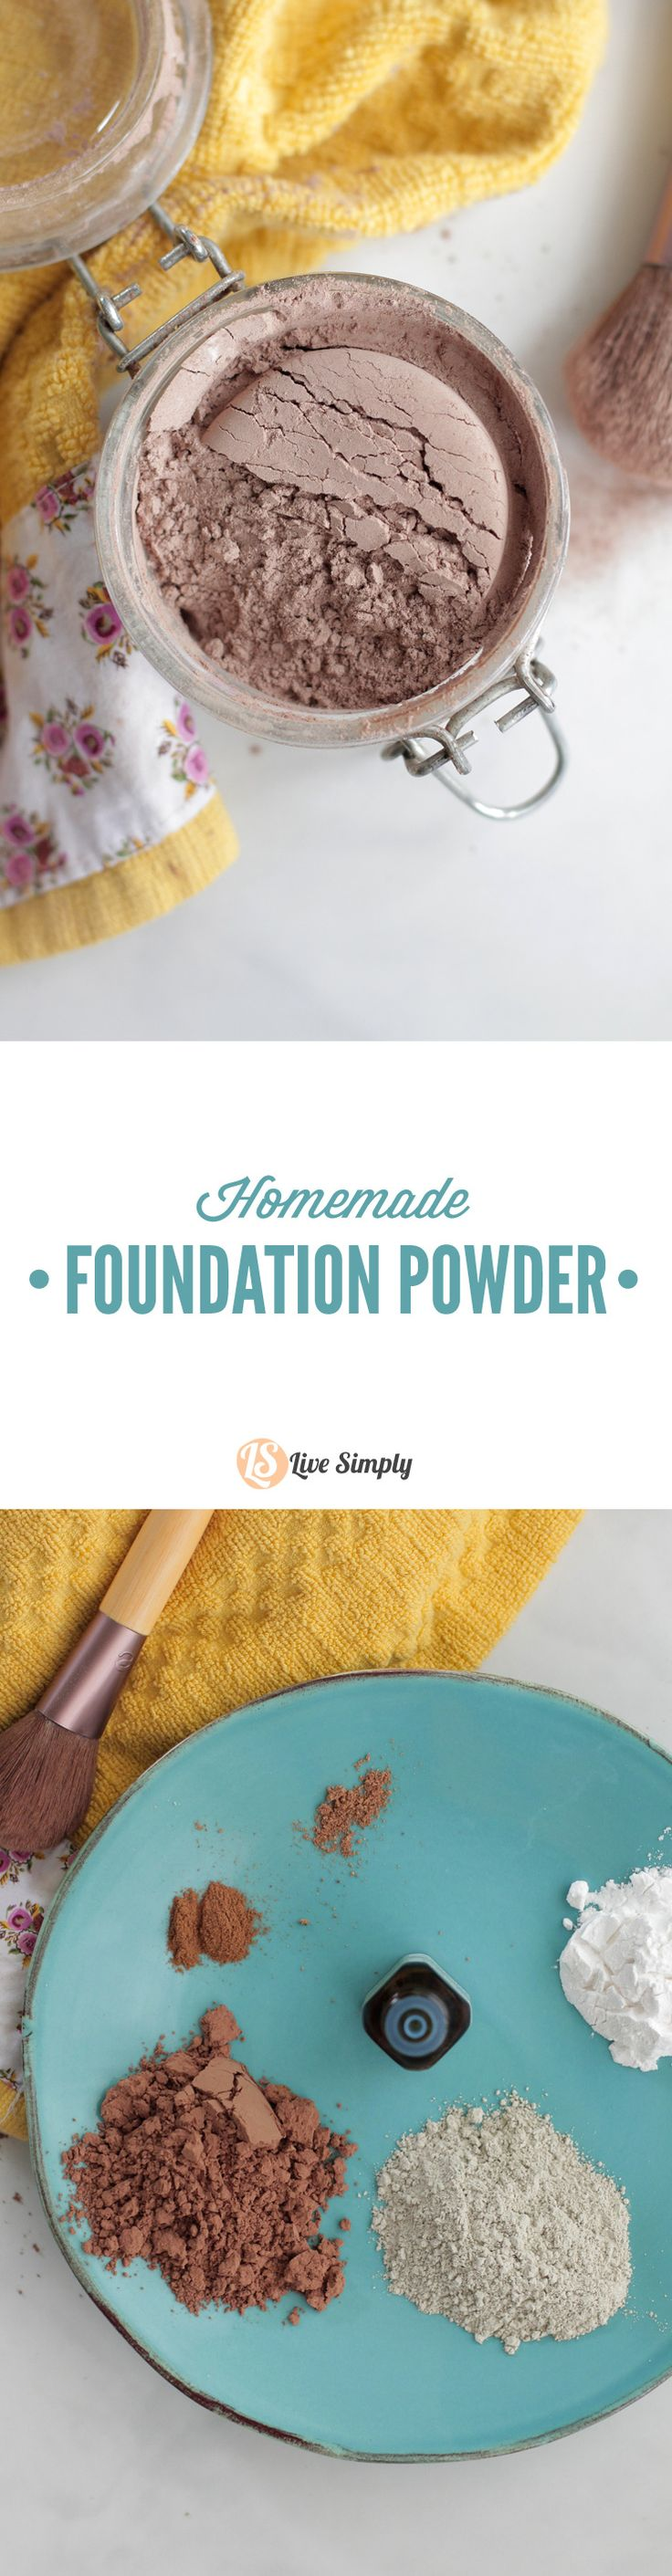 Homemade FOUNDATION POWDER made with all-natural ingredients. I've been using this homemade foundation powder for years and love it!!